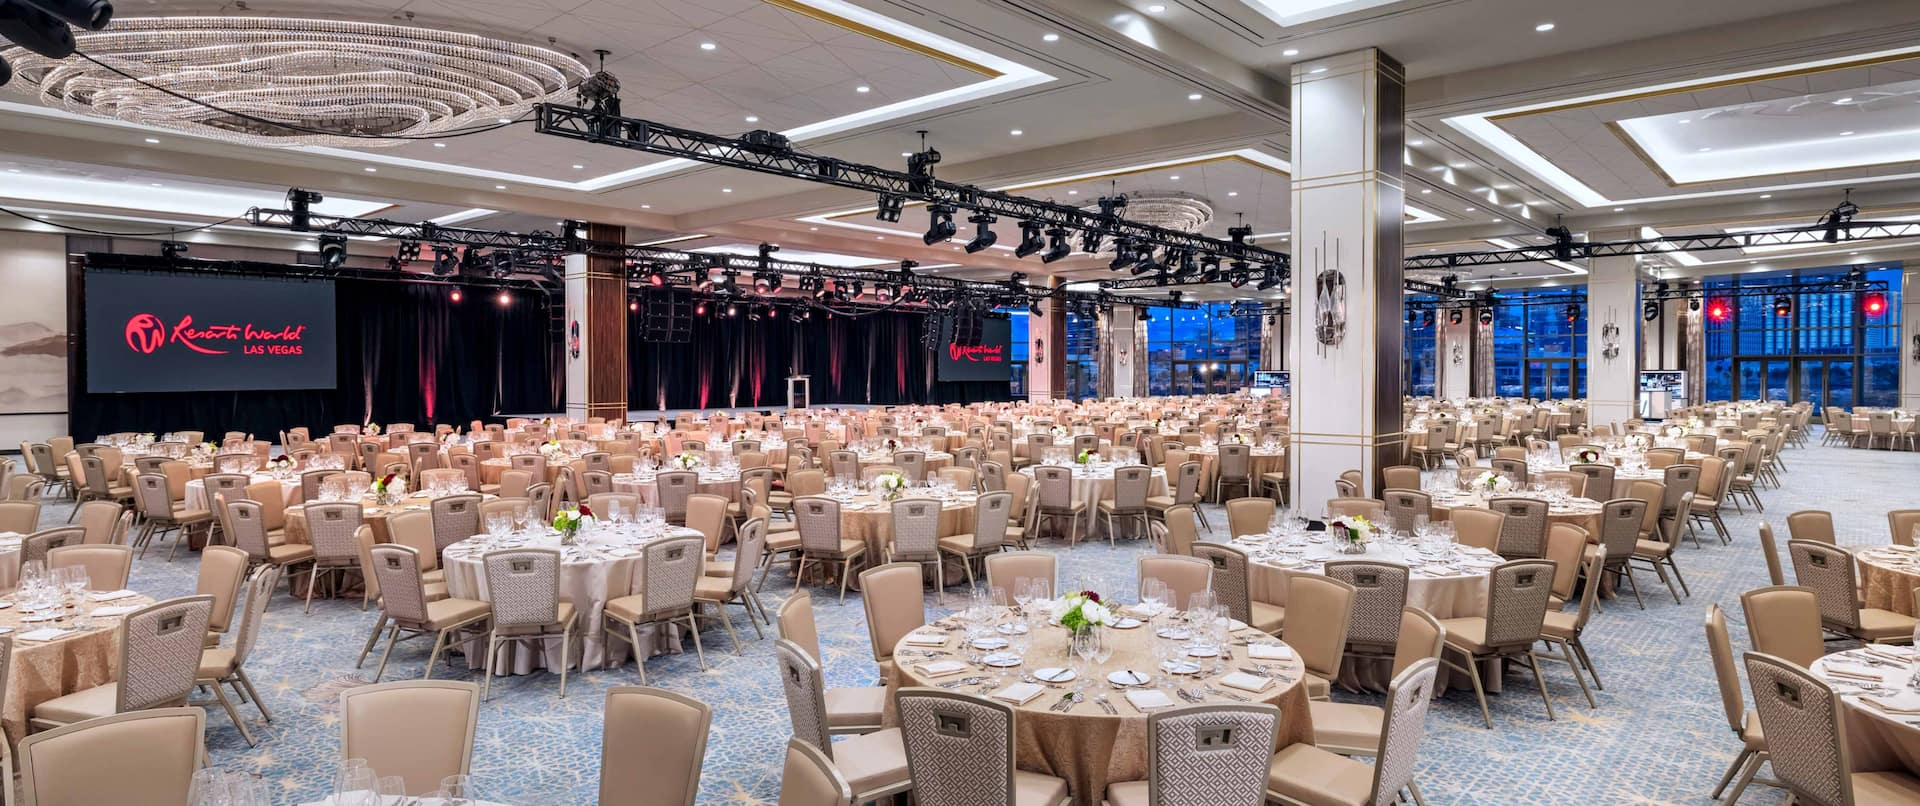 Large Banquet Room Setup for an Event